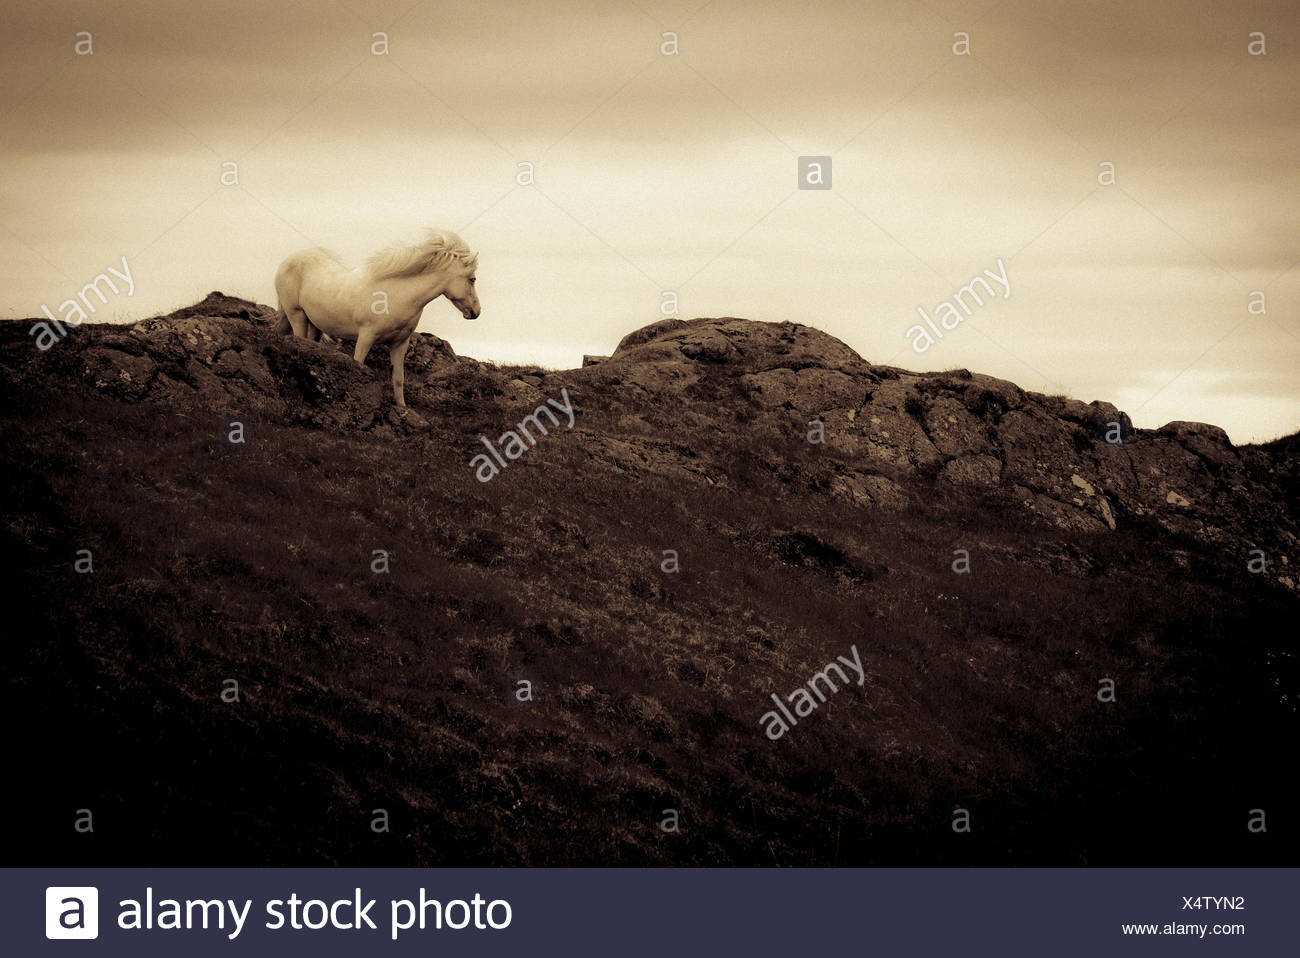 An Icelandic horse at the base of the solitary,holy mountain Helgafell on the Snaefellsnes Peninsula in western Iceland. - Stock Image